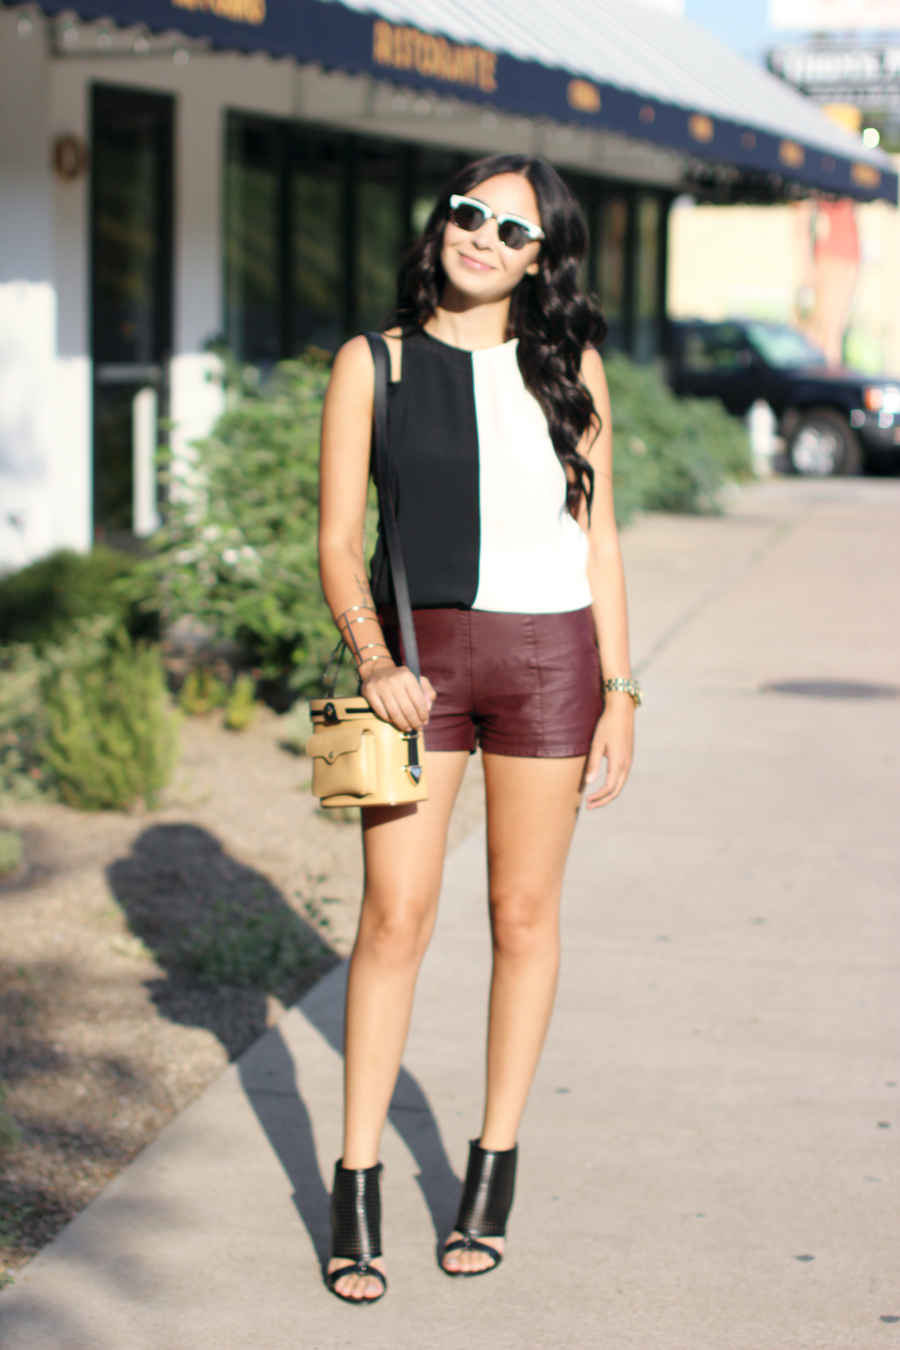 FIXIN-TO-THRILL-COLOR-BLOCK-LEATHER-SHORTS-CURLING-WAND-BLACK-WHITE-FALL-ATX-AUSTIN-STYLE-BLOG-SHIRTS-COLORS-TRENDS-FW15-TRENDY-CHIC-GLAM-FASHION-TEXAS-2